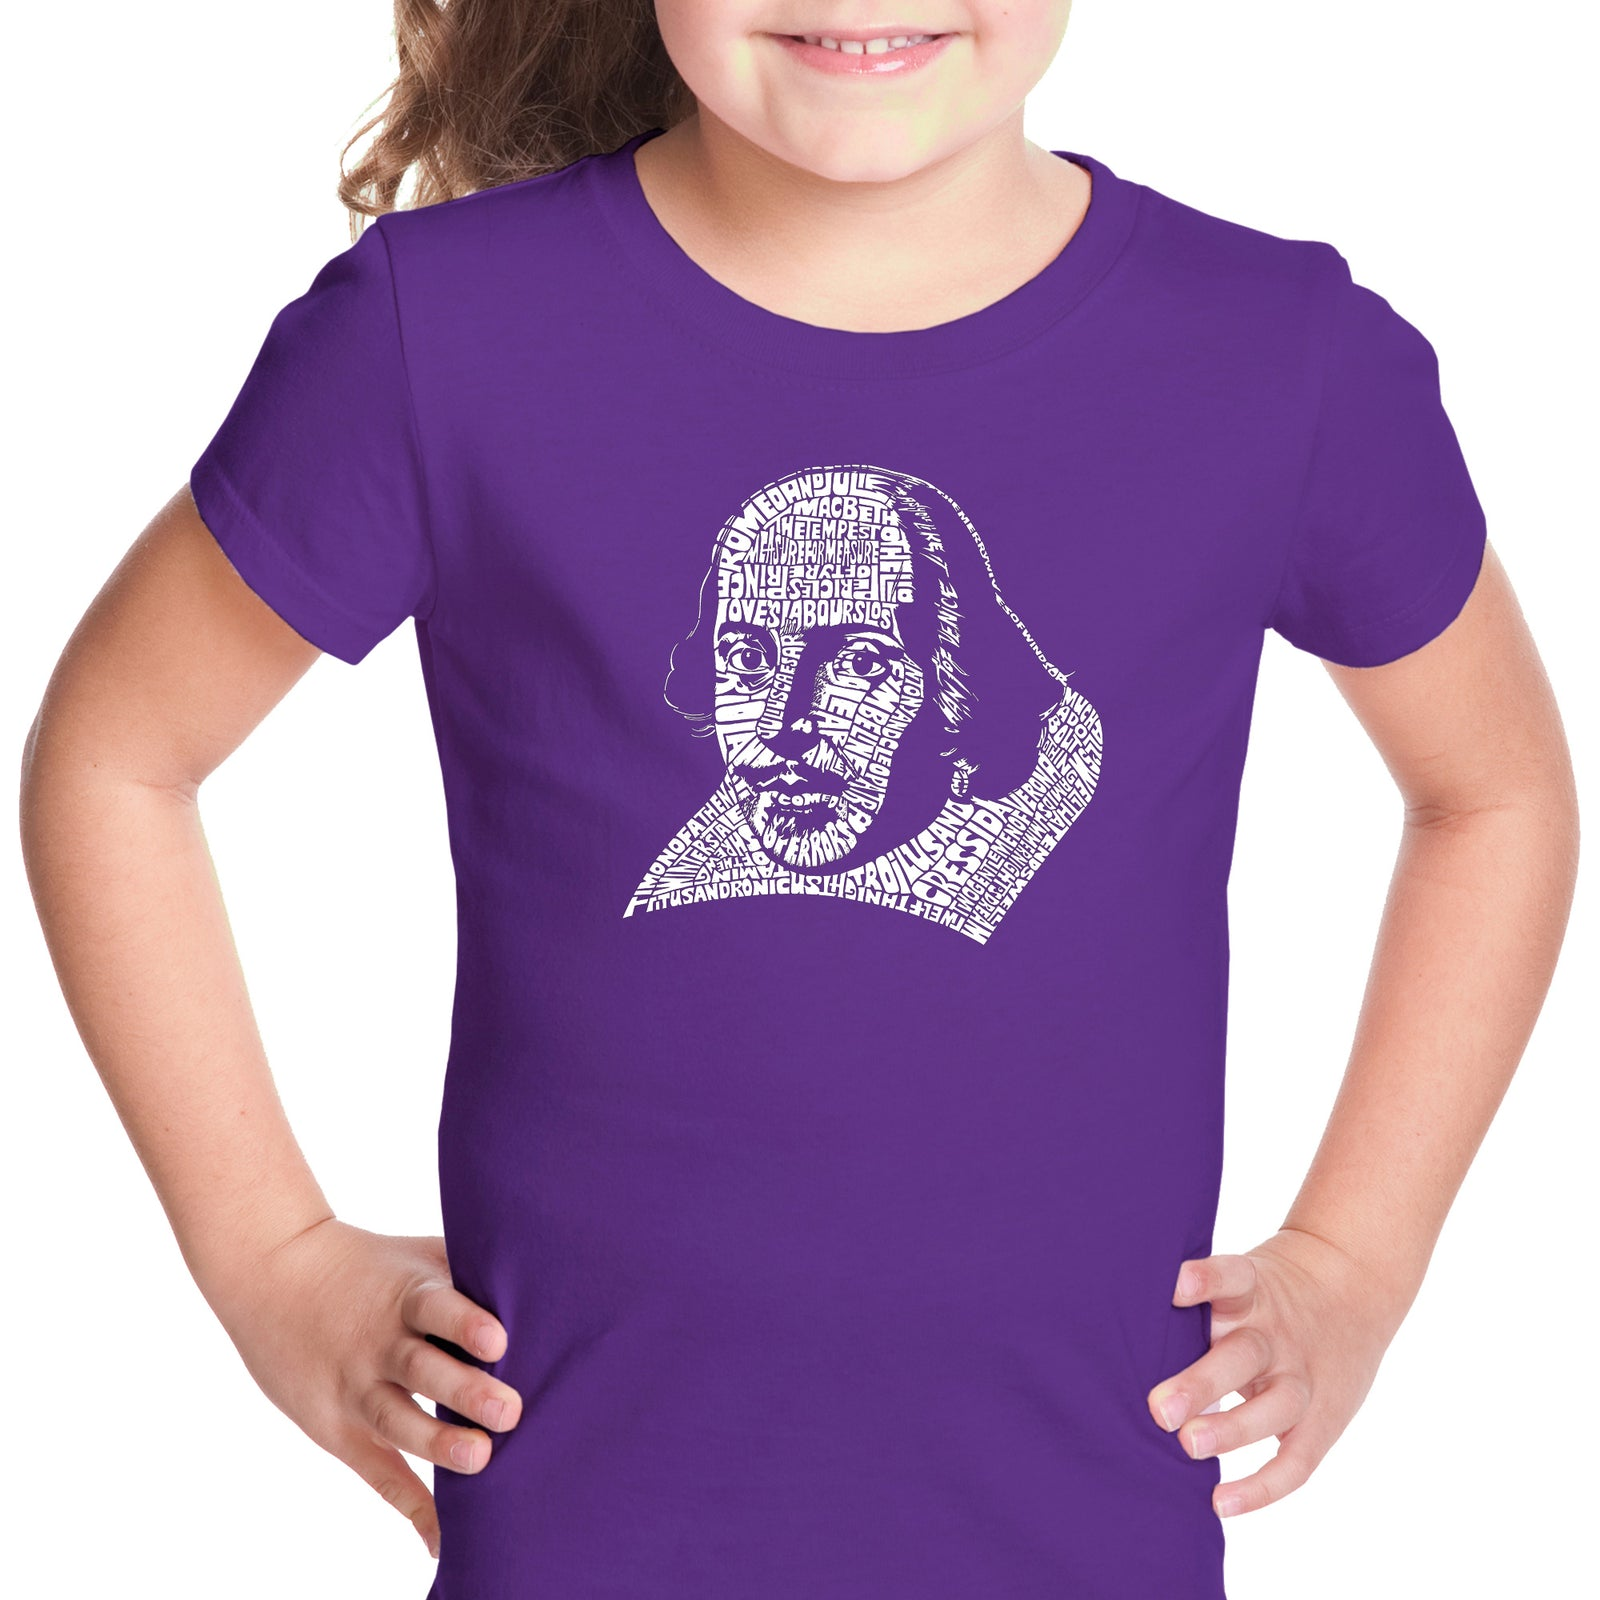 Girl's T-shirt - THE TITLES OF ALL OF WILLIAM SHAKESPEARE'S COMEDIES & TRAGEDIES